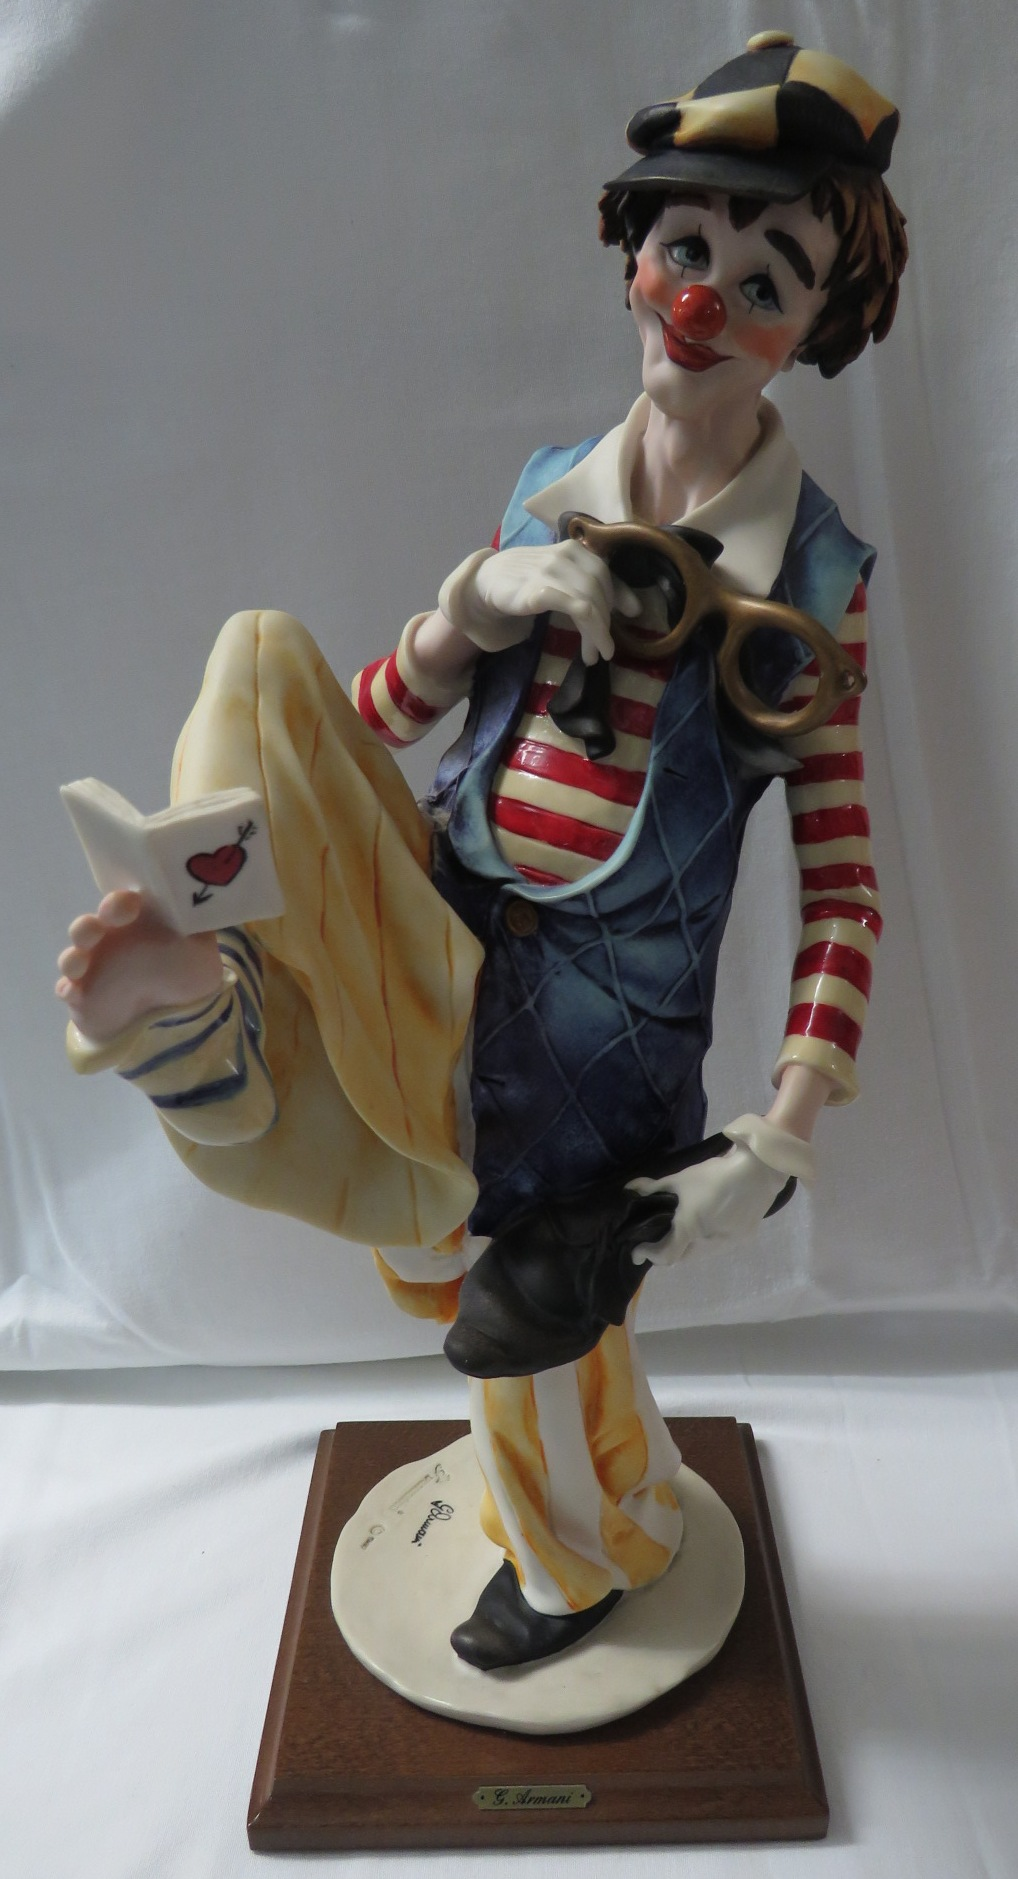 Lot 53 - A Capodimonte resin figure of a clown reading a book held between his toes, signed G Armani with